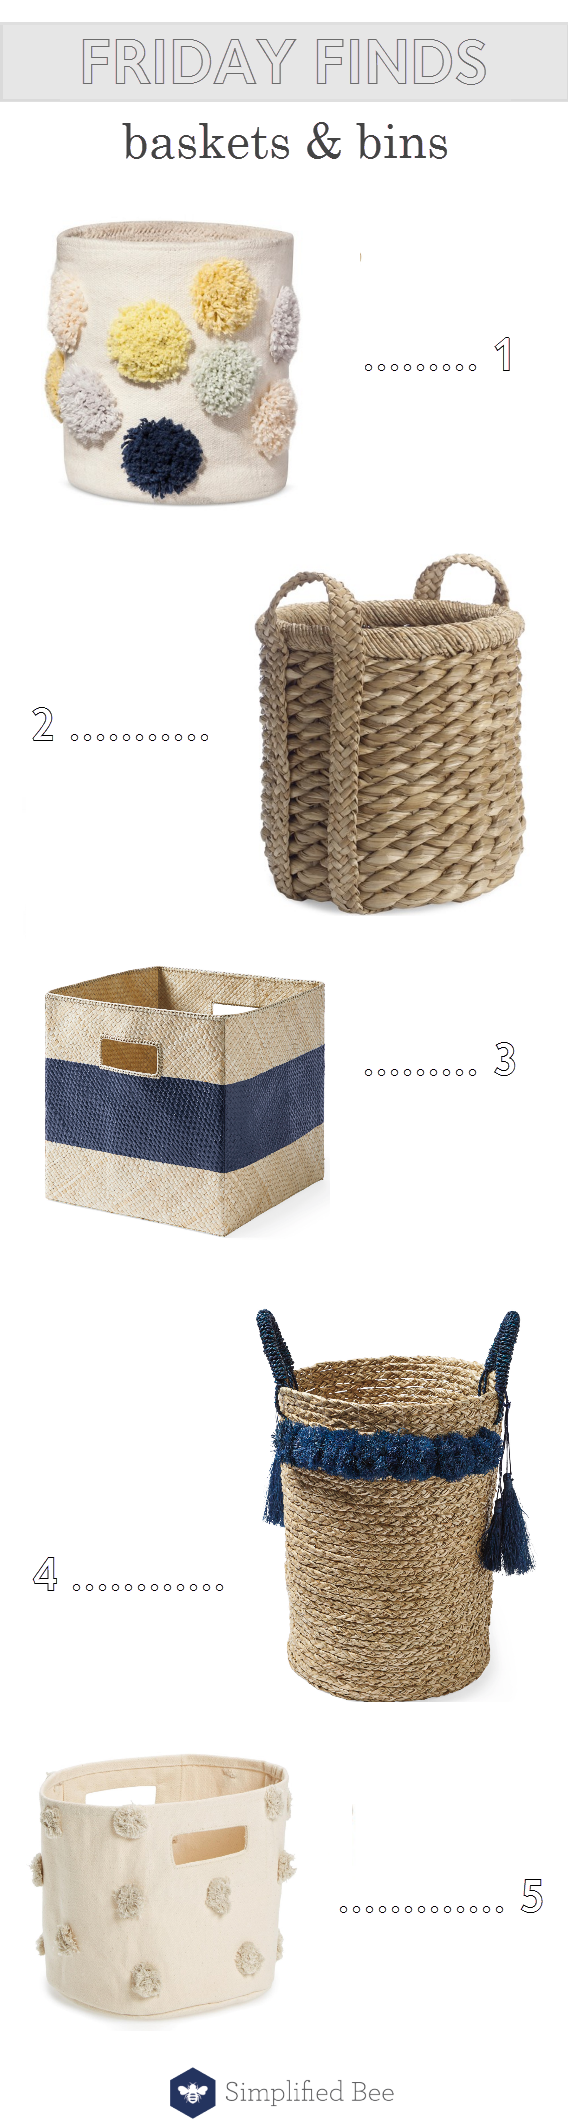 decorative baskets and bins // storage solutions // @simplifiedbee #storage